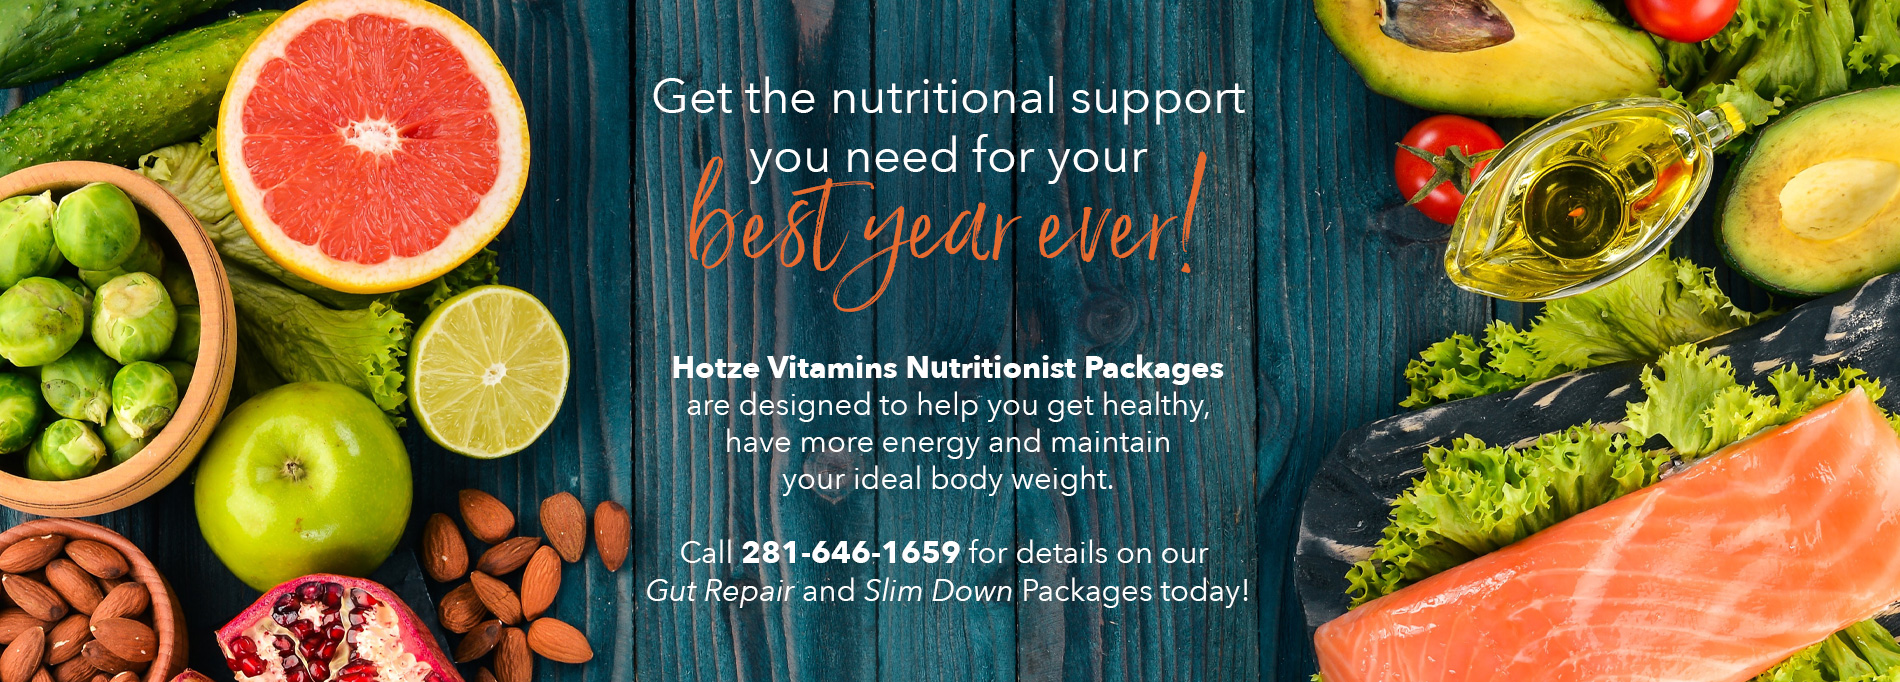 Nutritionist Packages